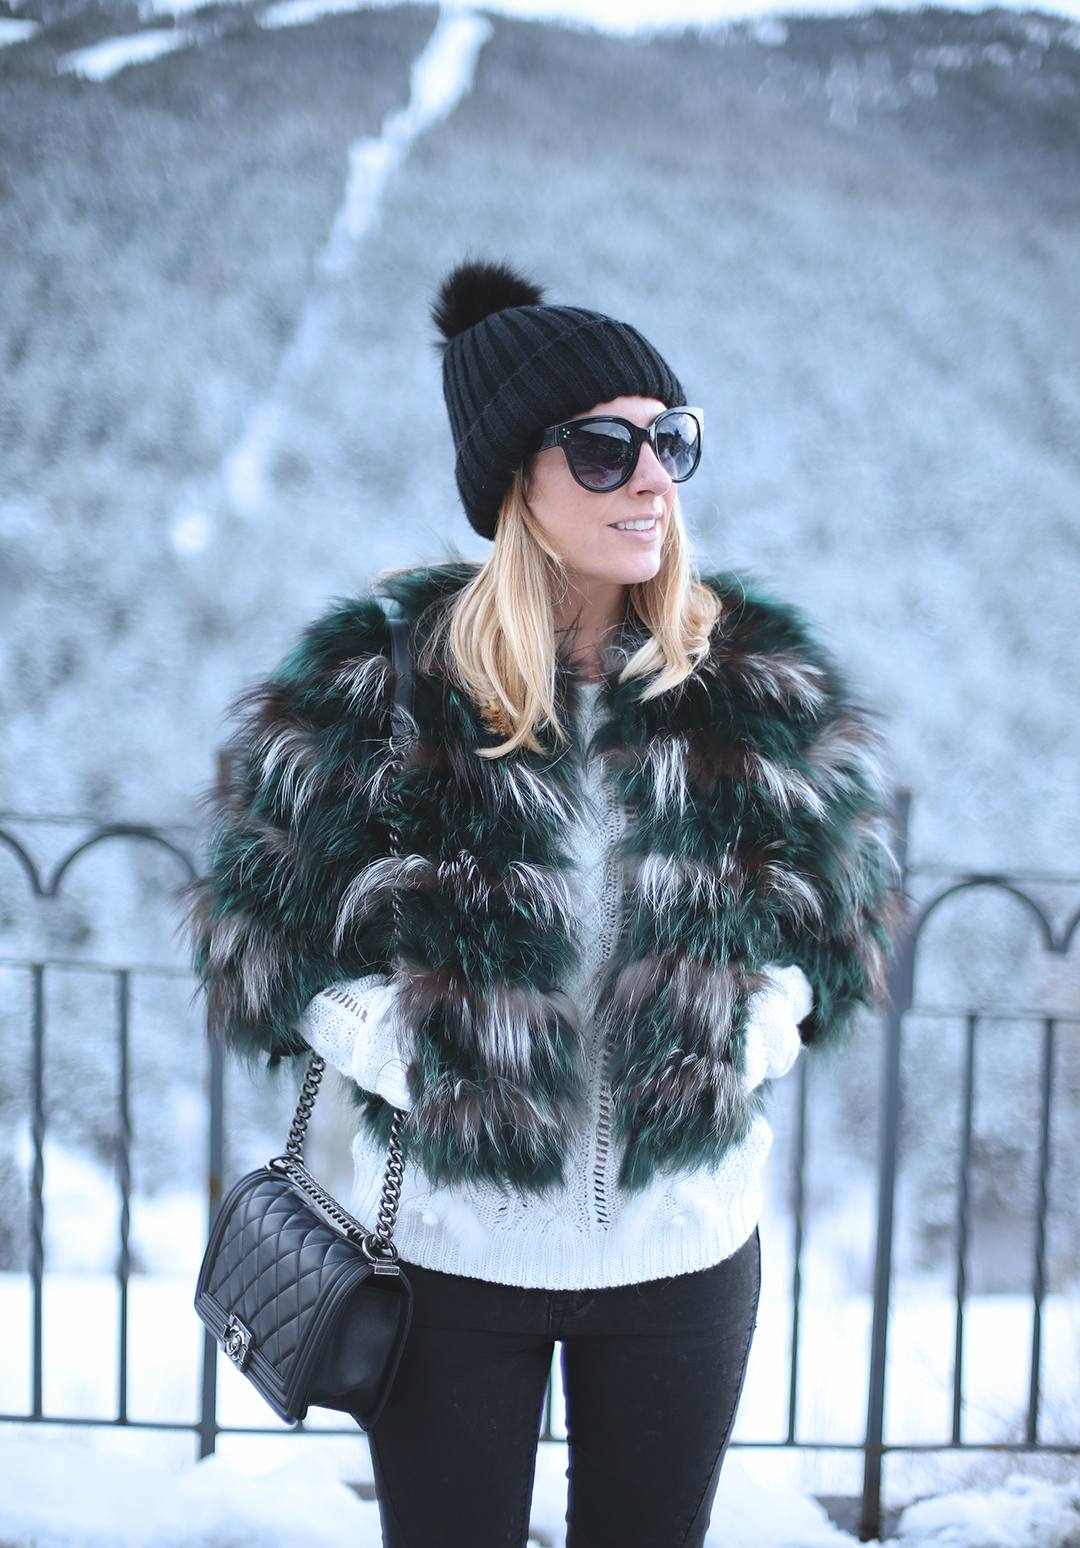 GRAND-VALIRA-FASHION-BLOGGER-ANDORRA-MES-VOYAGES-A-PARIS